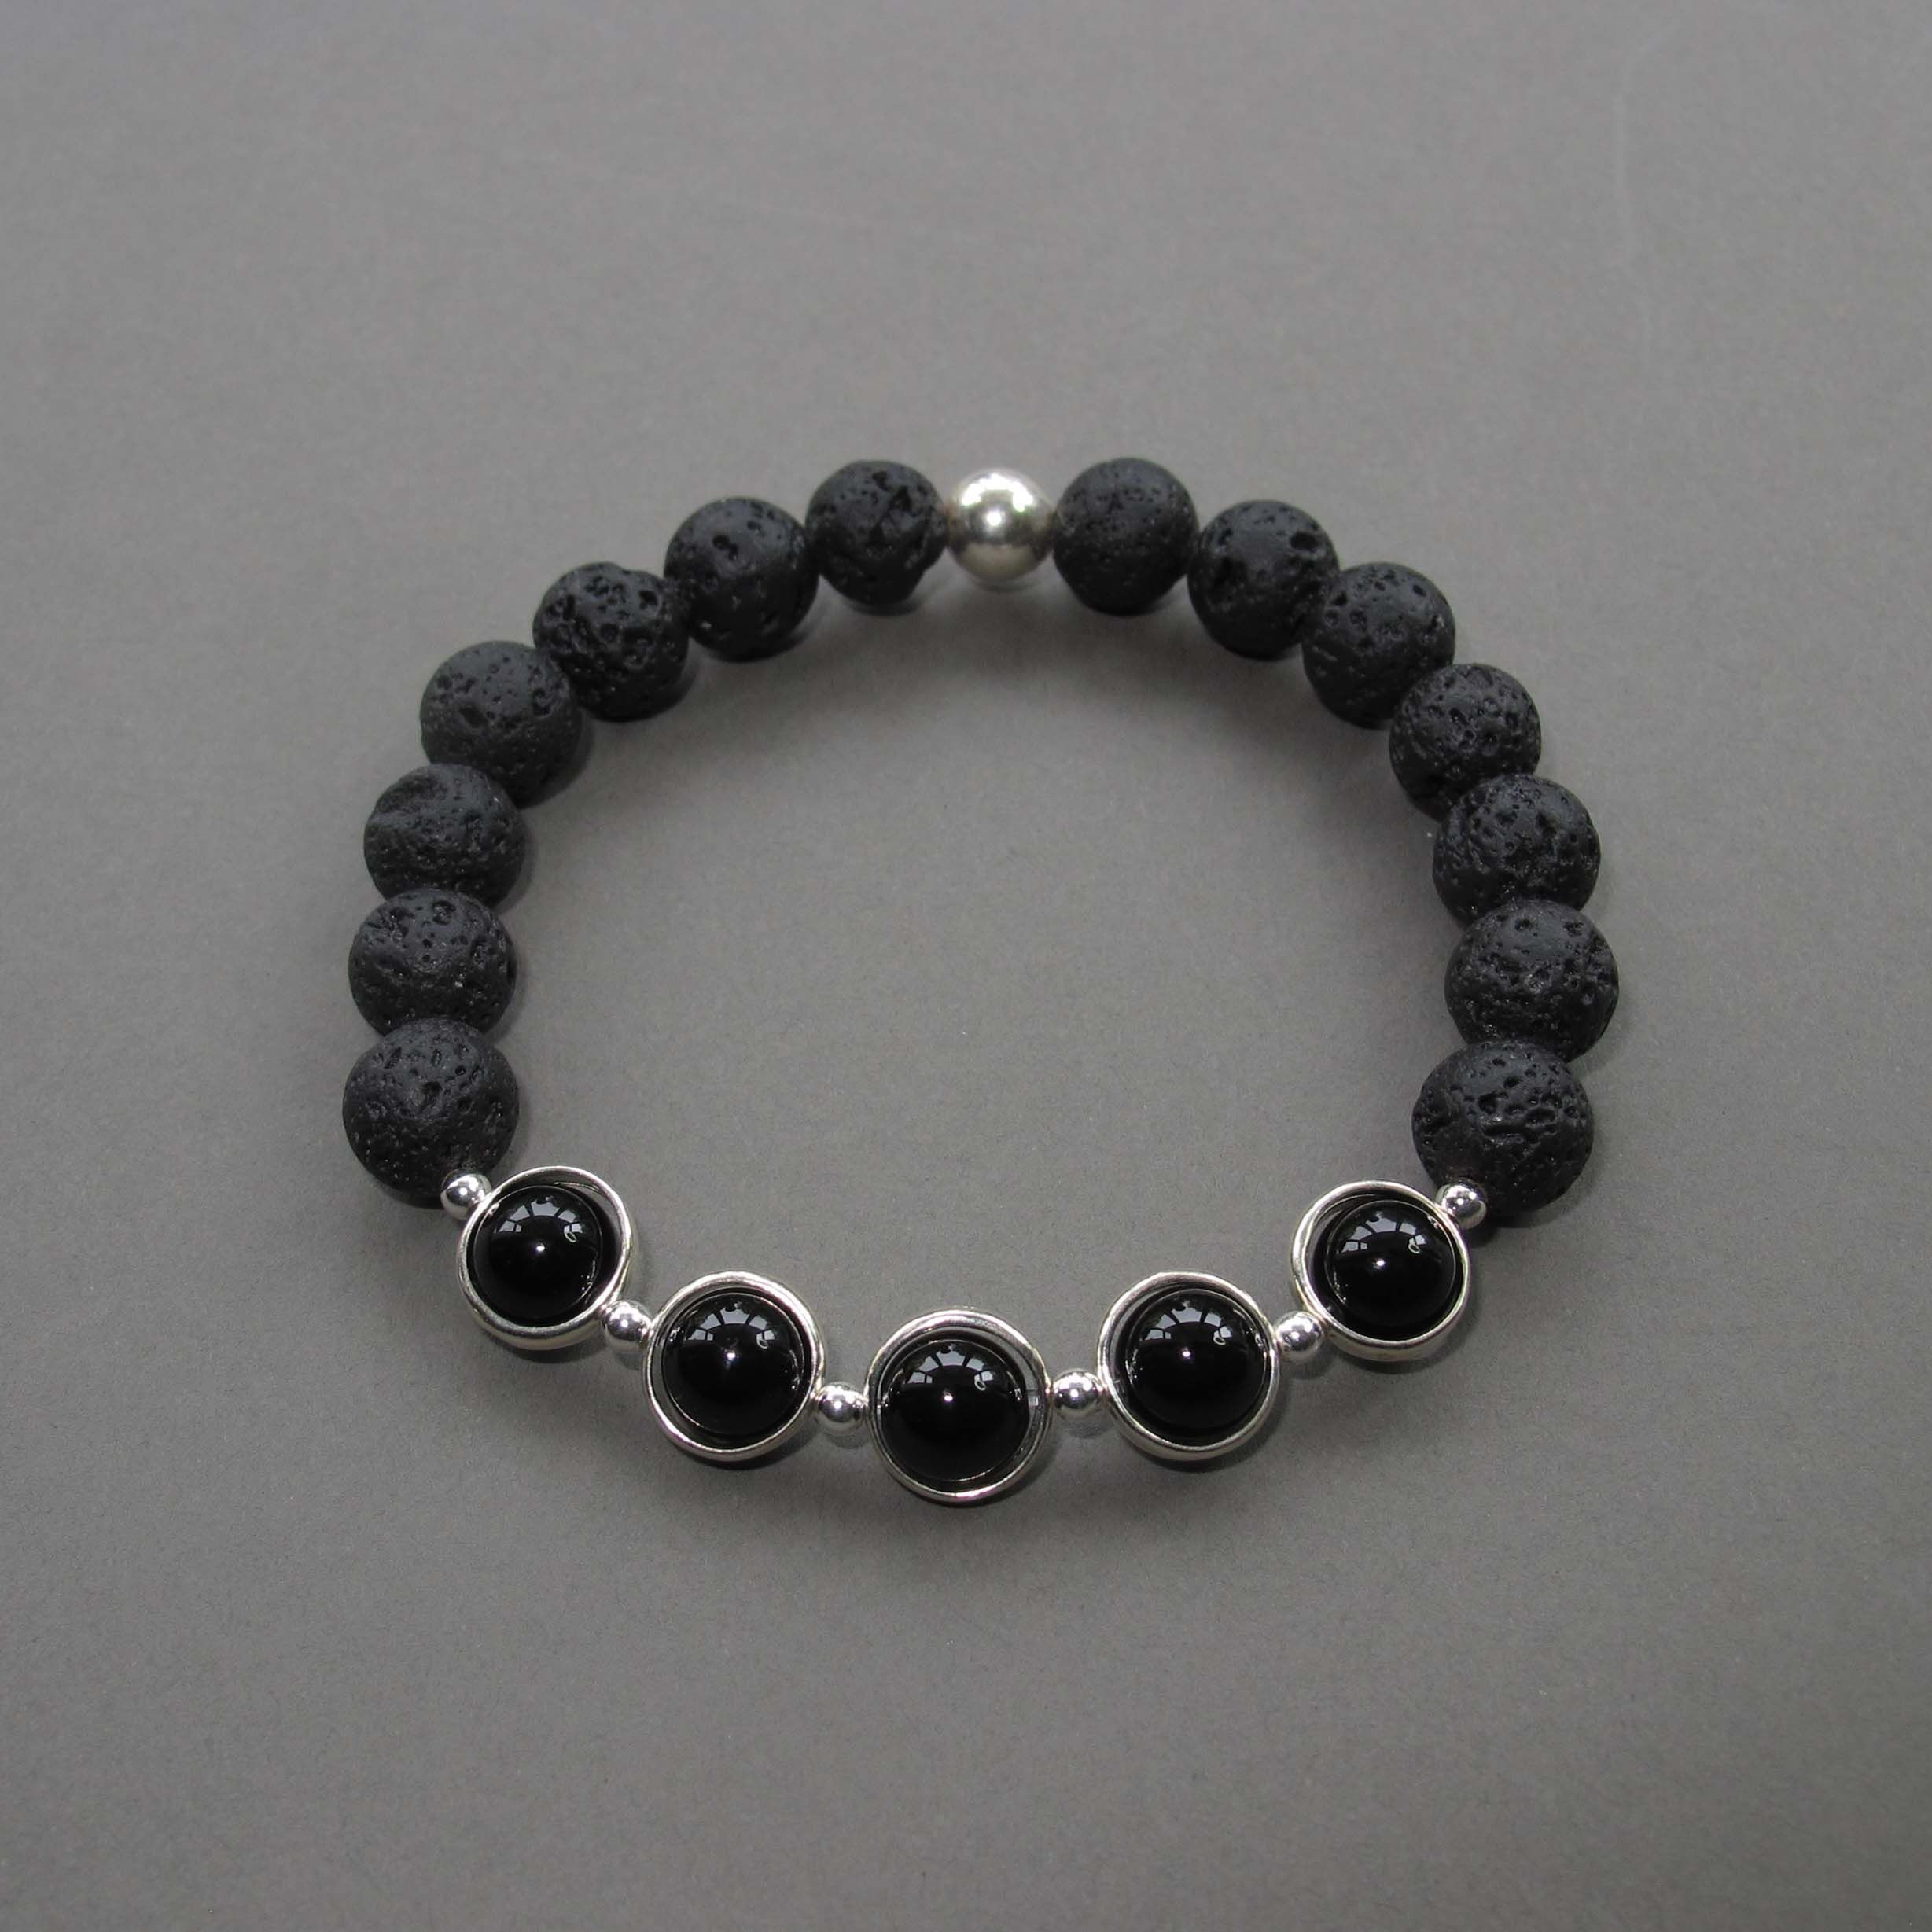 Black onyx and lava bracelet for men with sterling silver